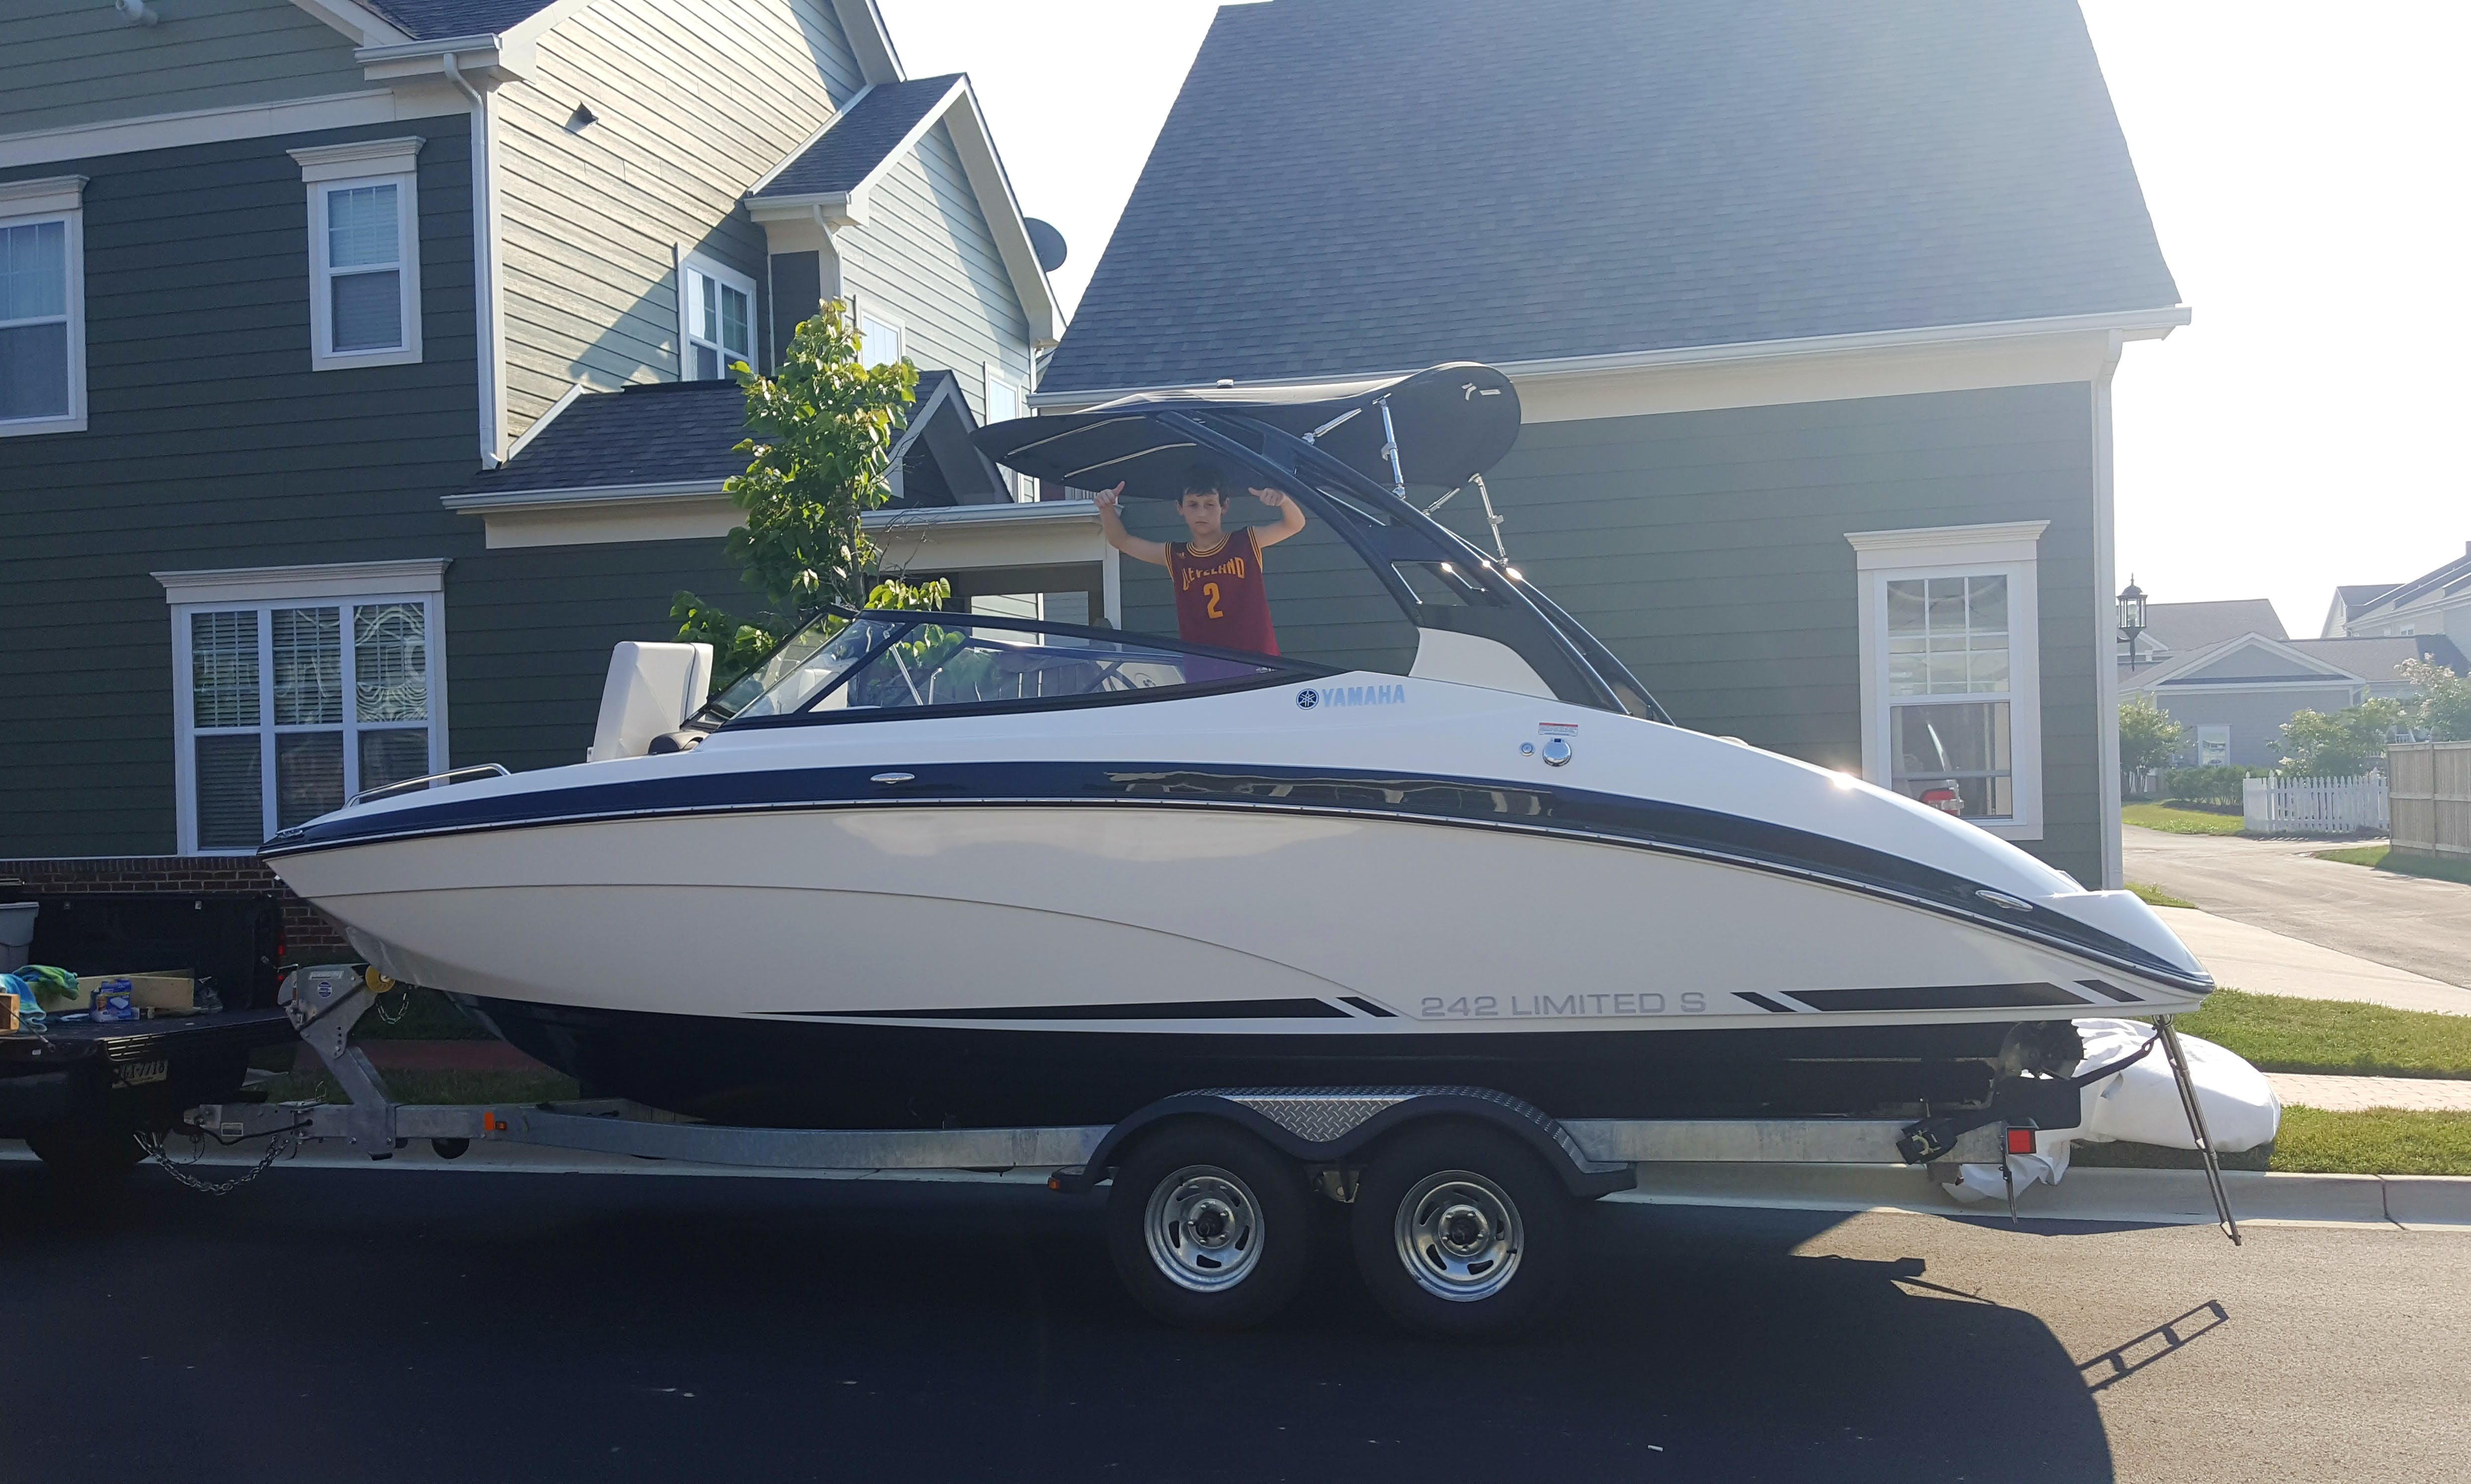 See the Bay from a beautiful 24' Wake Jet Boat in Annapolis